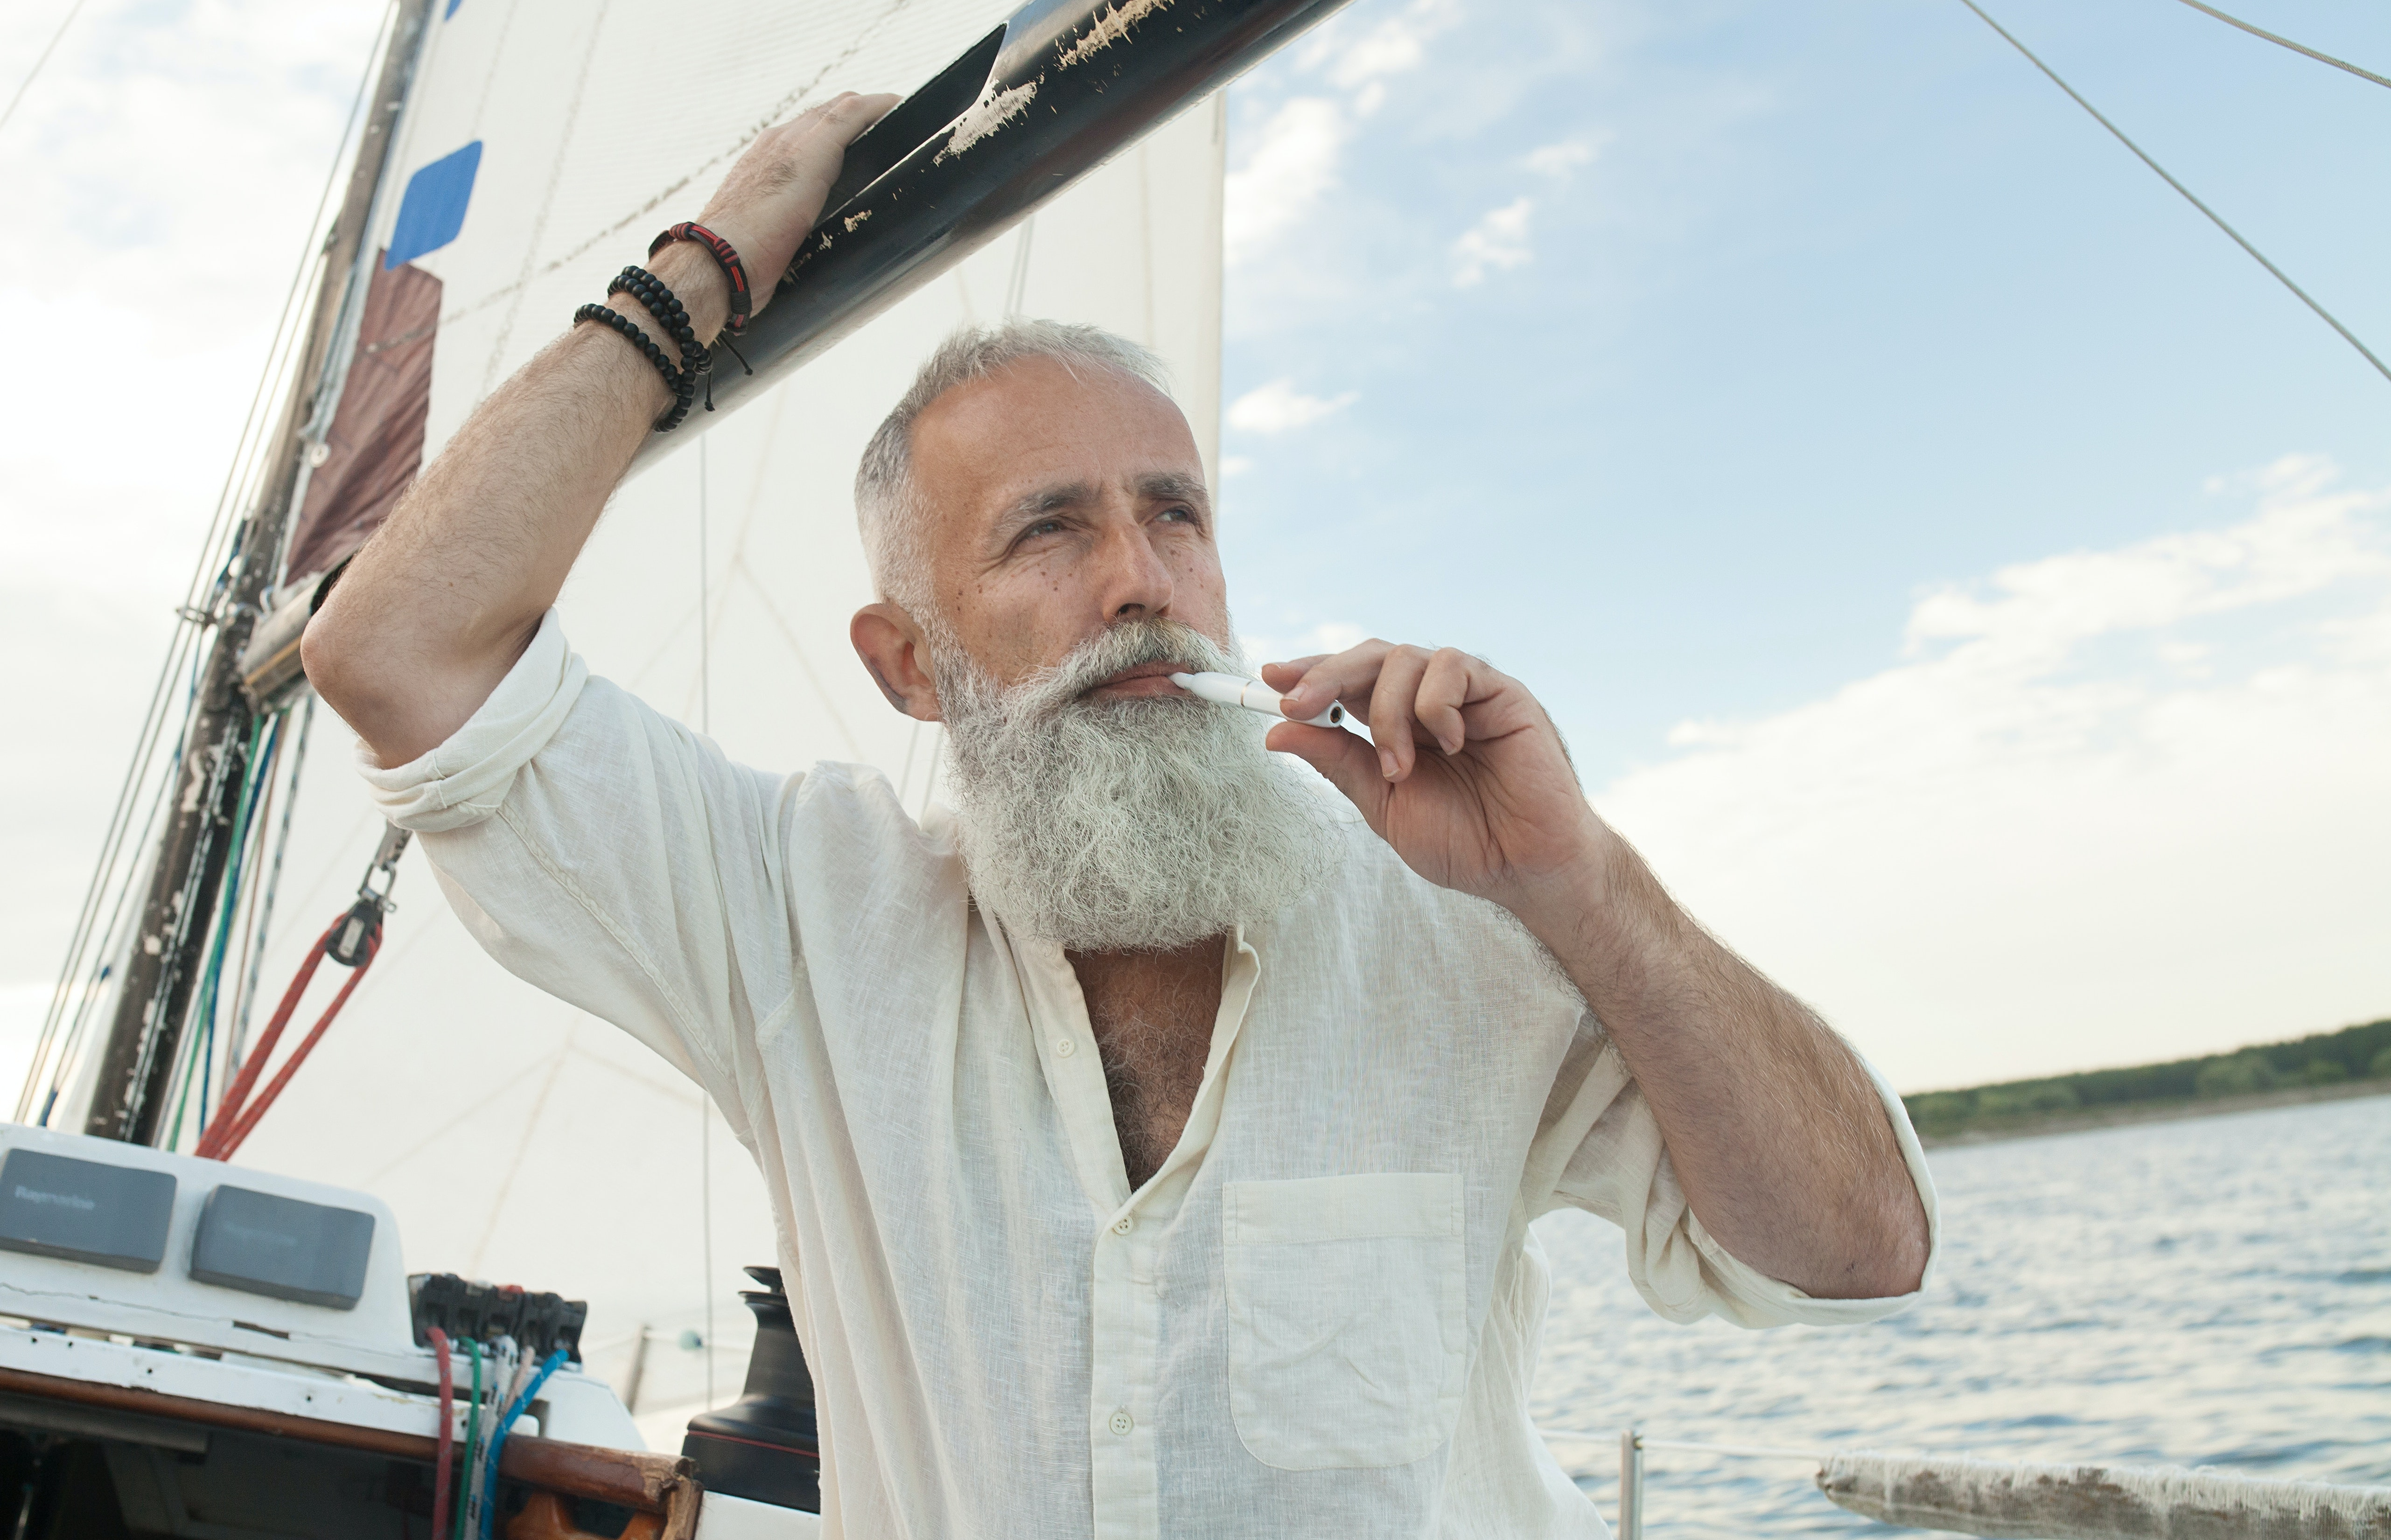 baby boomer weed use has doubled in the last decade